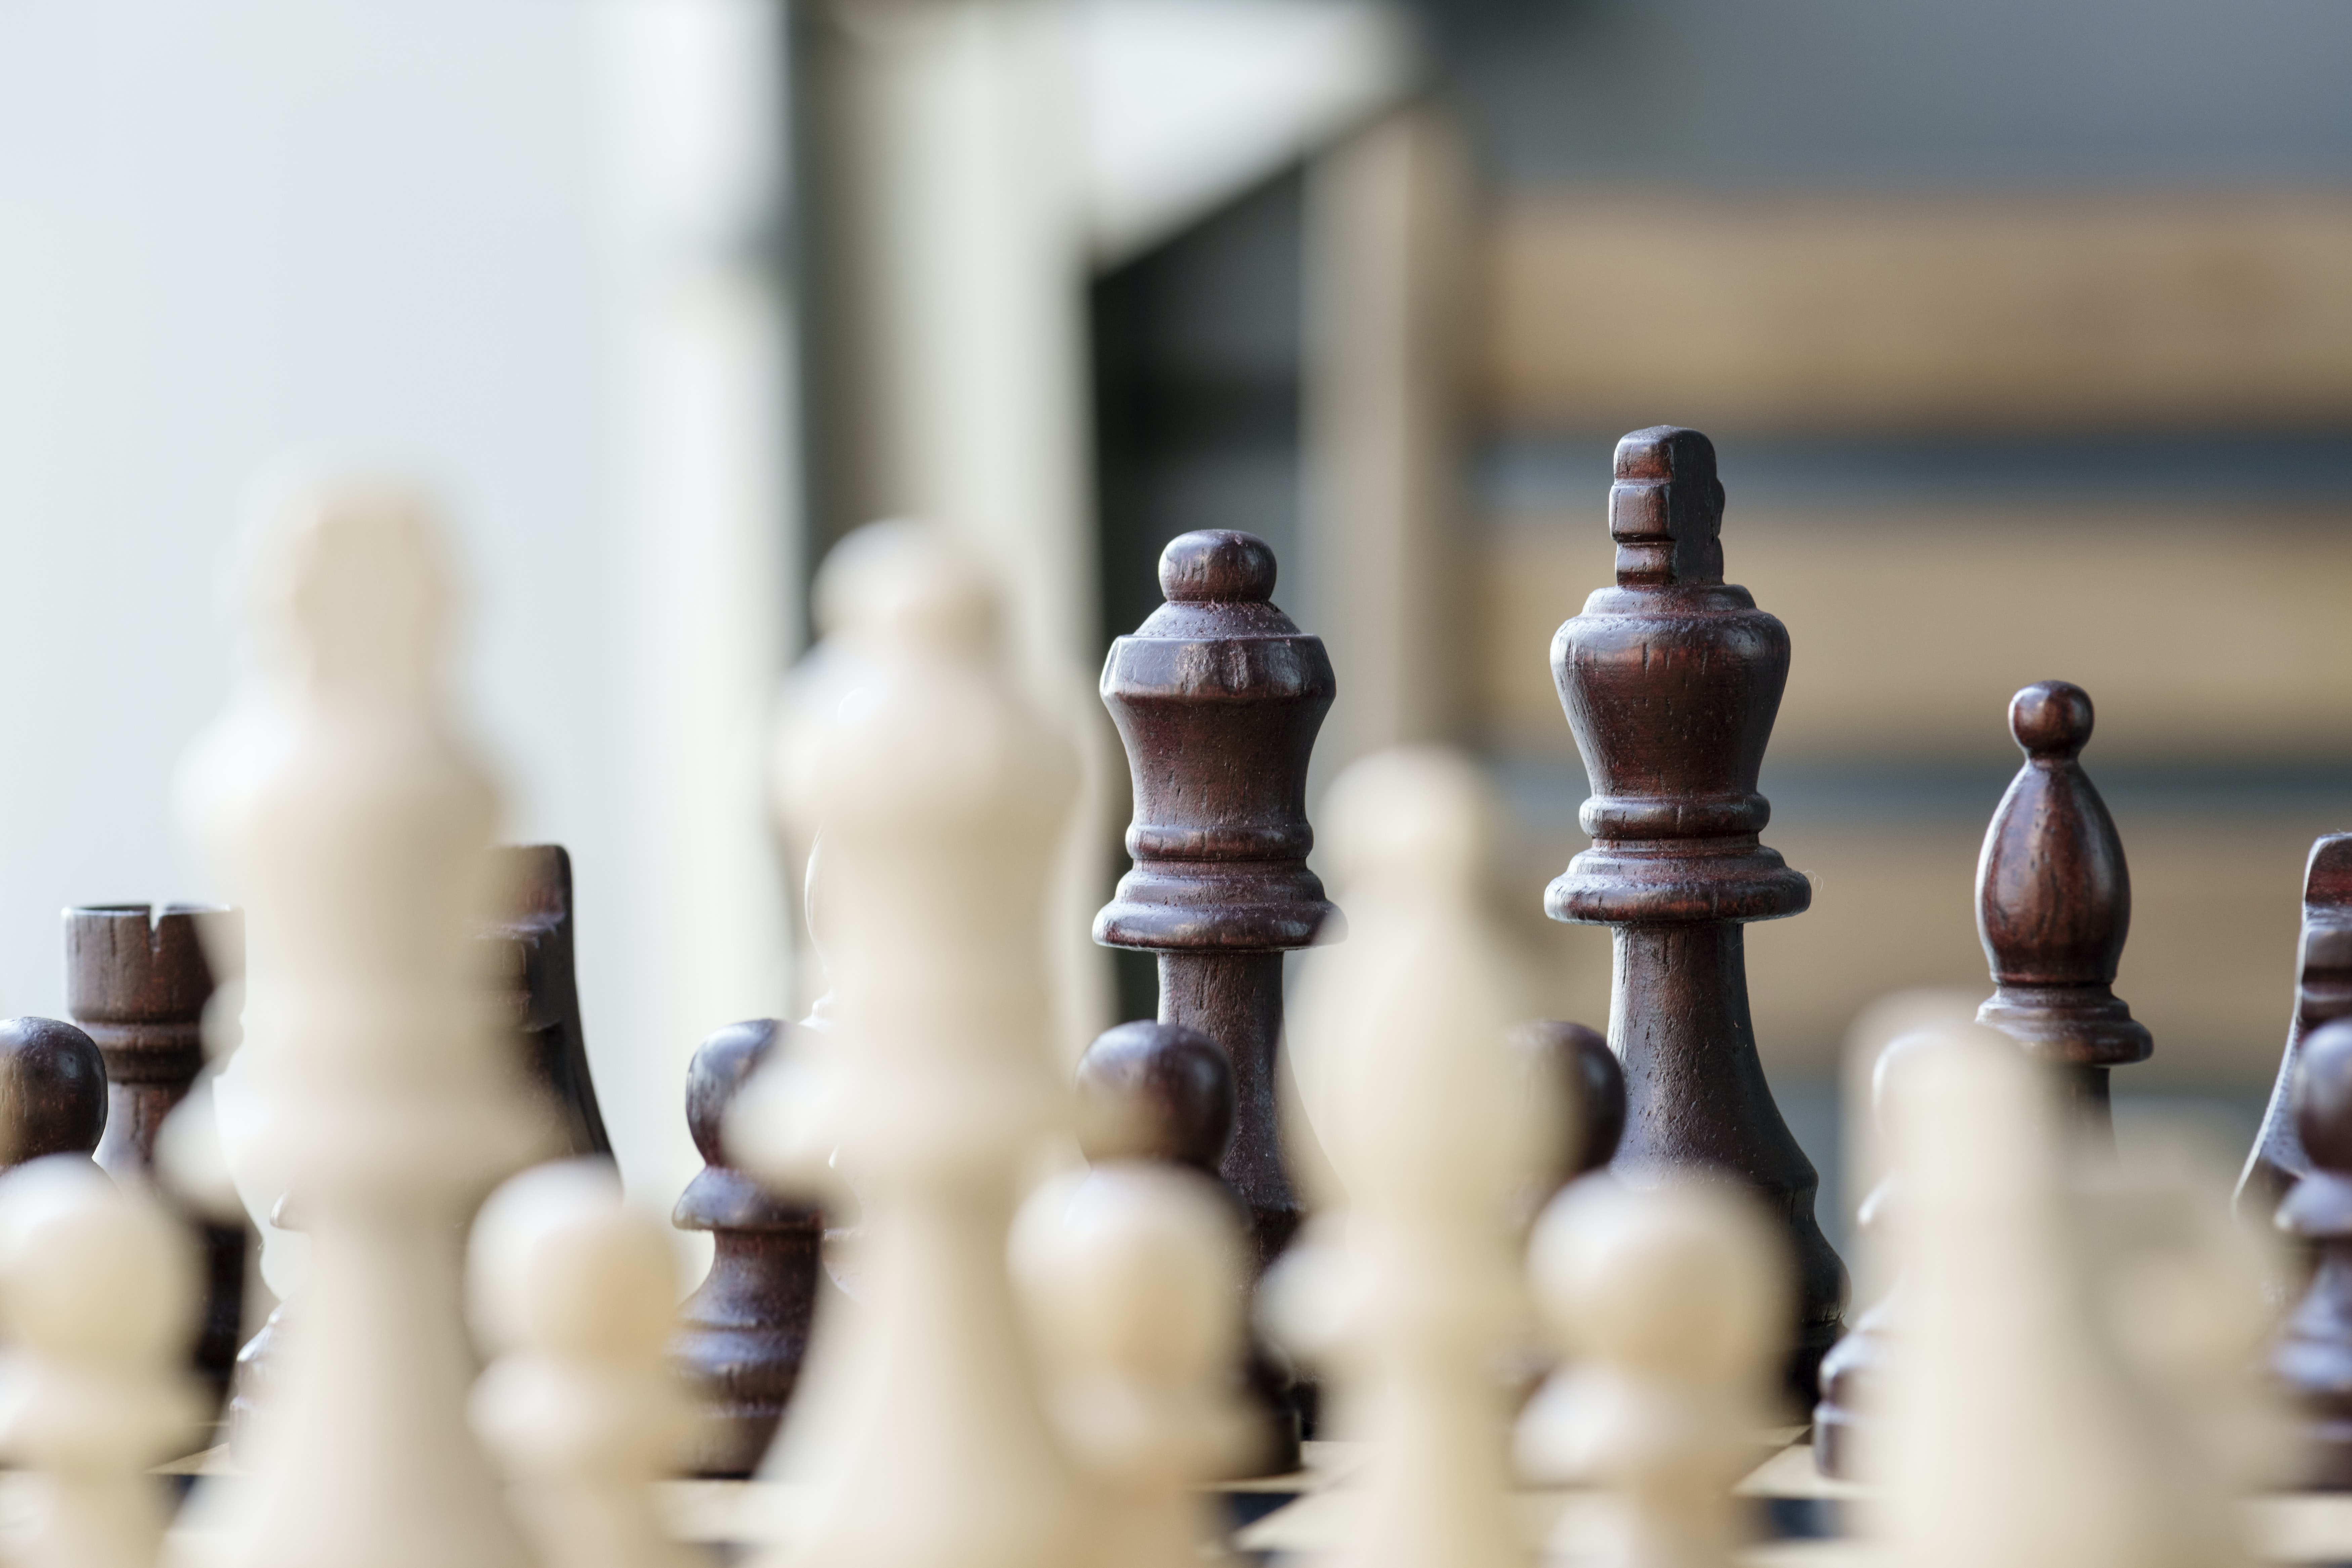 brown and beige chess pieces in focus photography at daytime